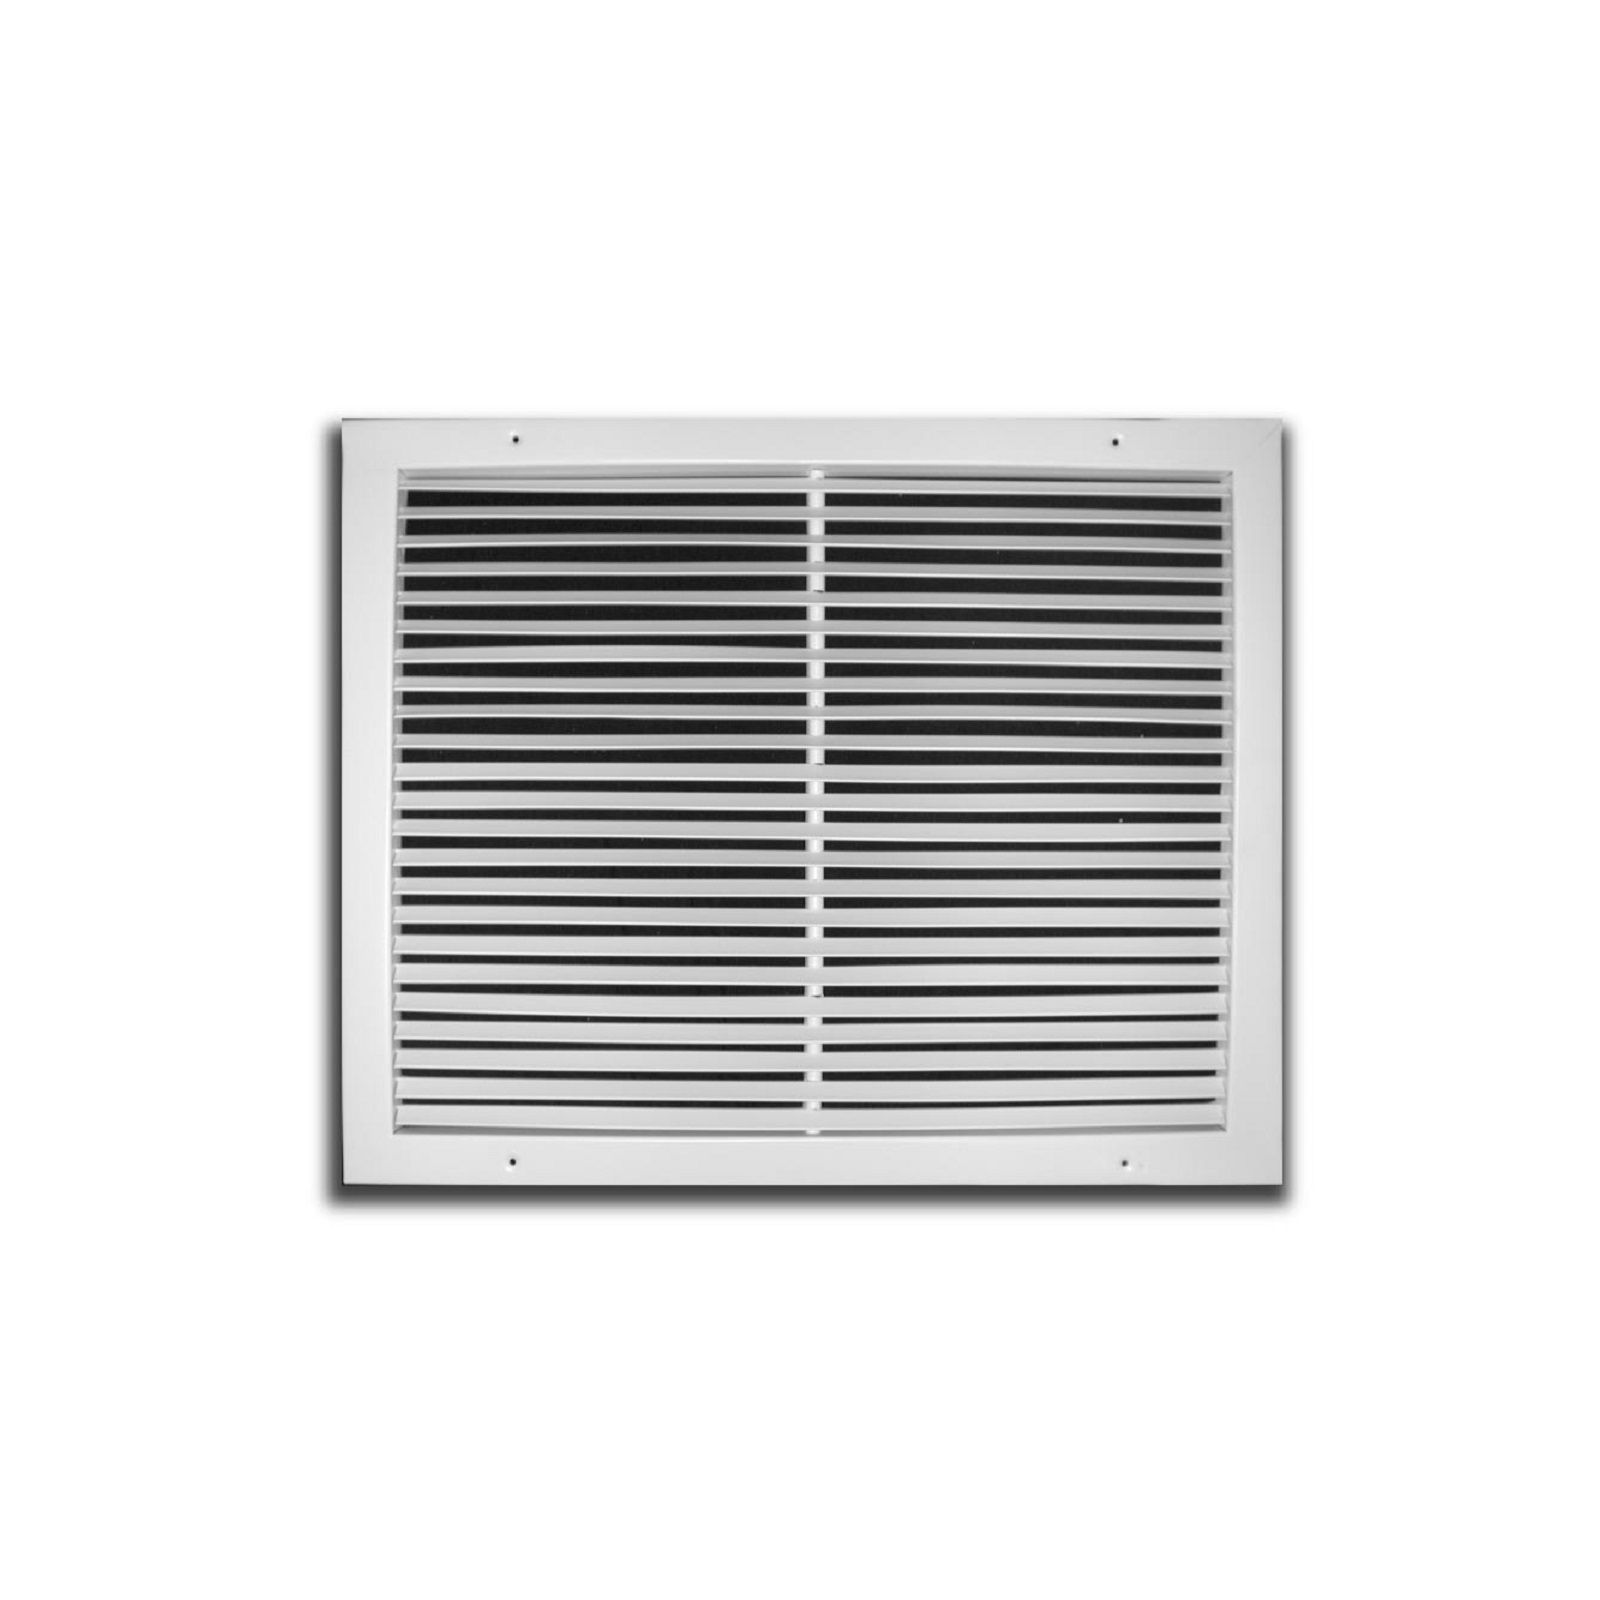 "TRUaire 270 20X10 - Steel Fixed Bar Return Air Grille, White, 20"" X 10"""